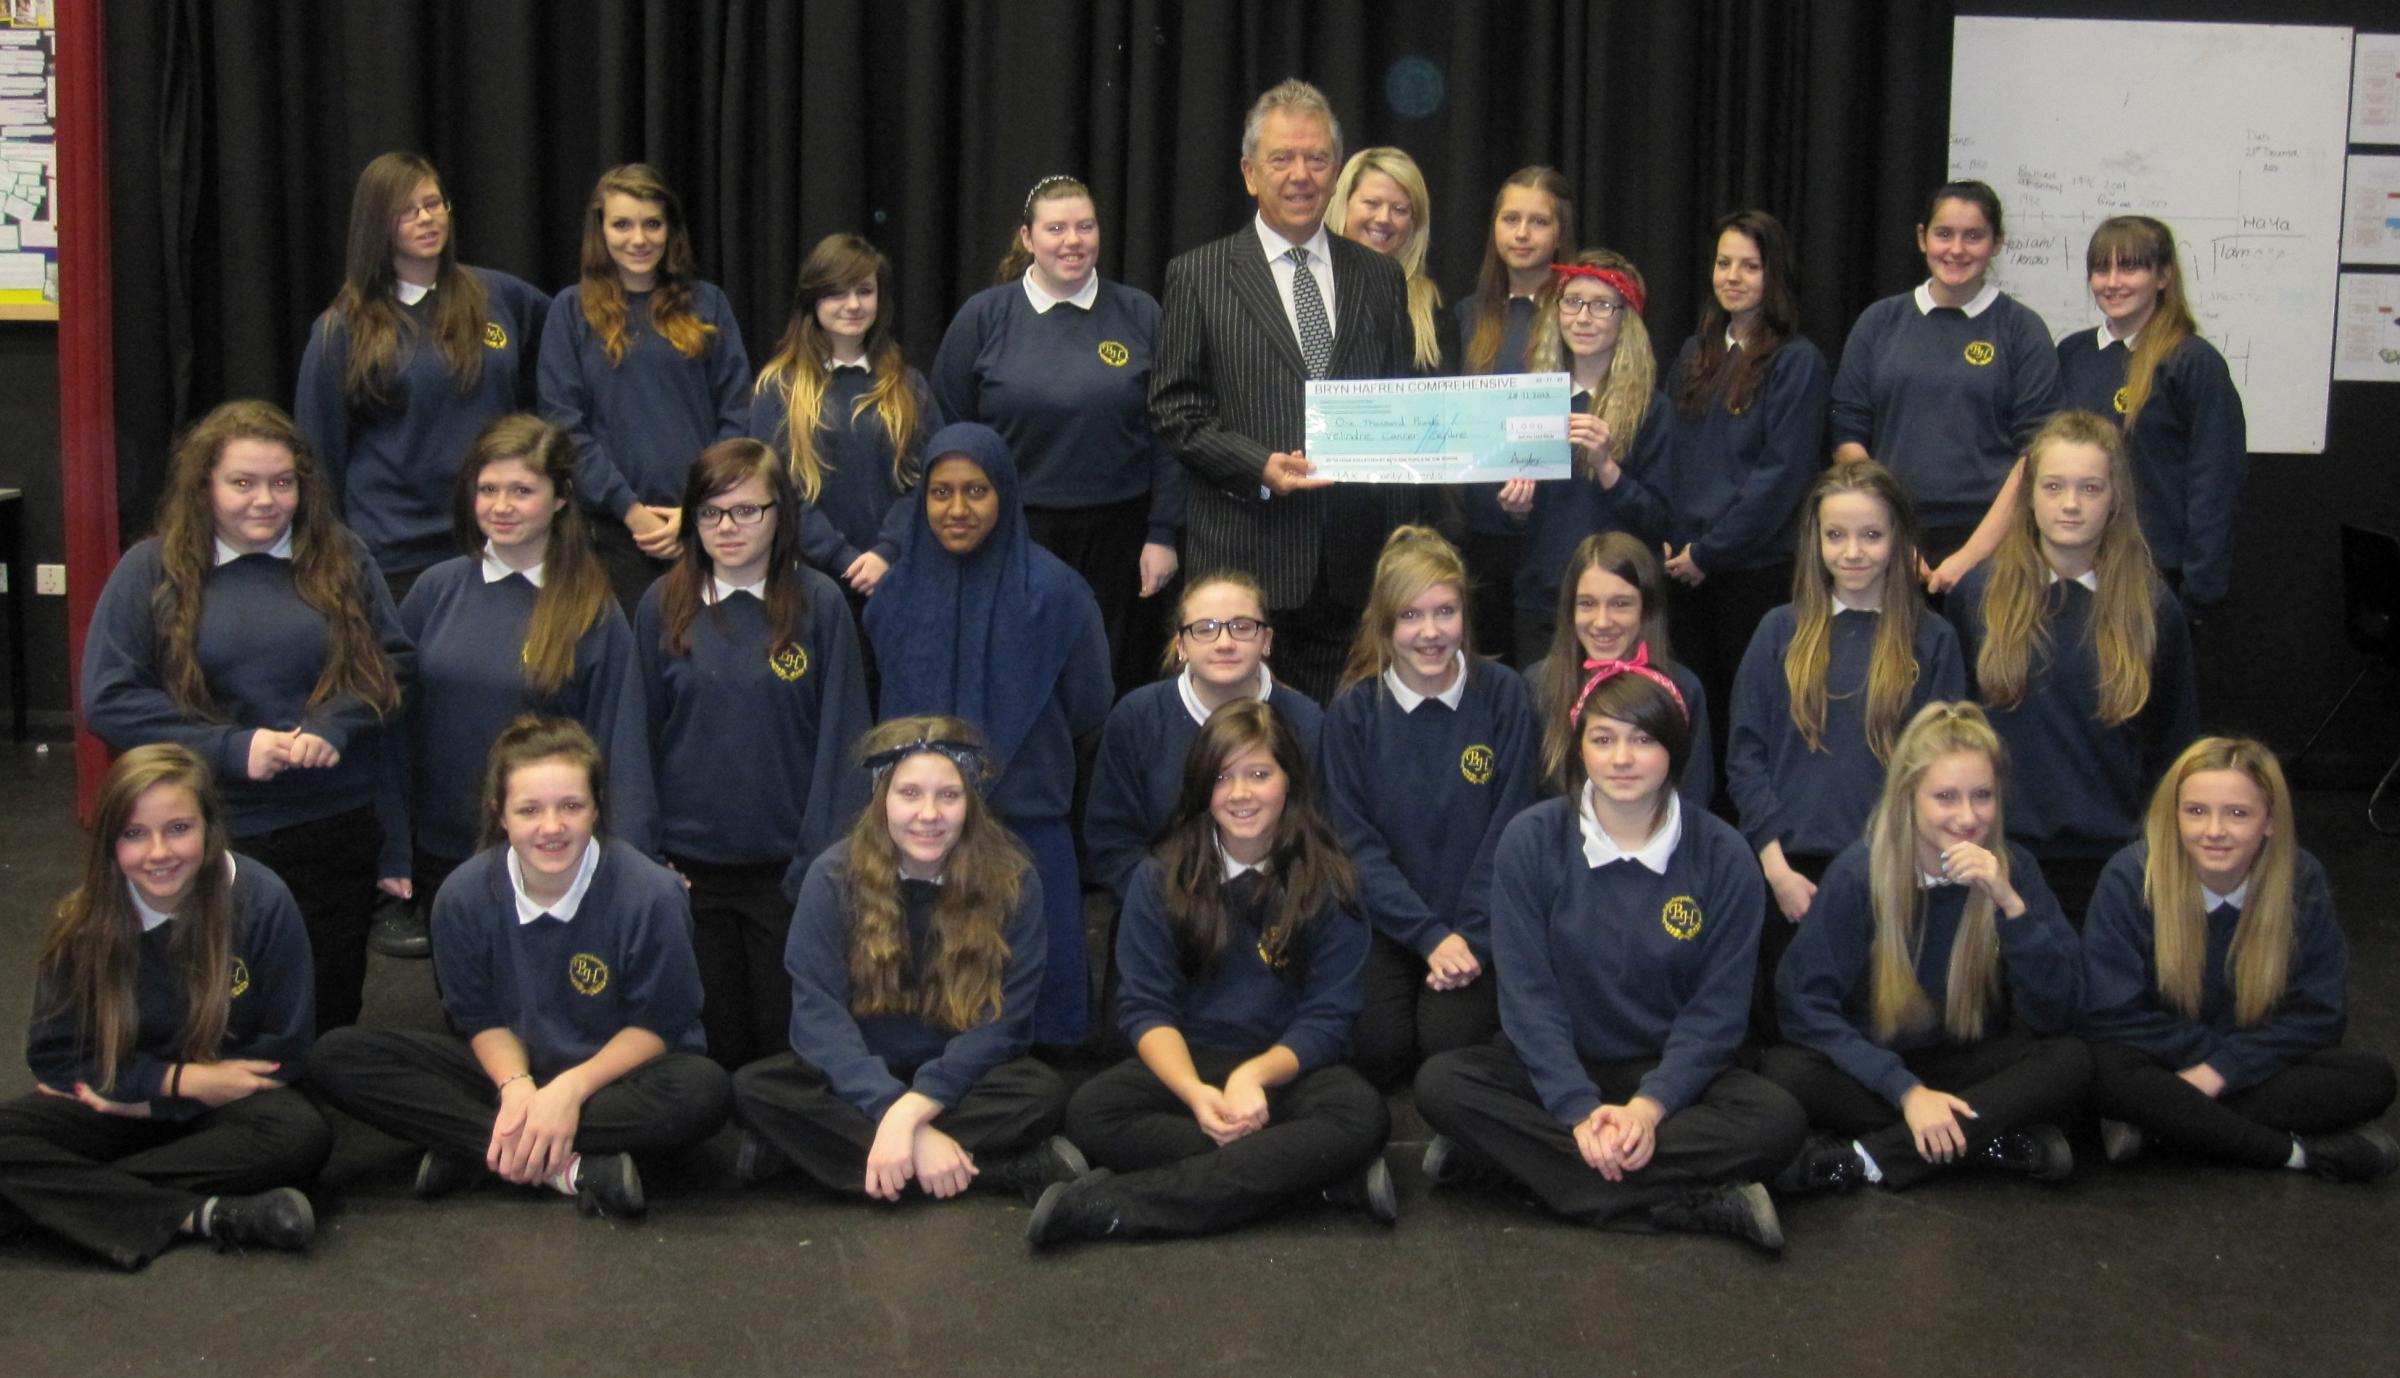 Recently year 9 have been celebrating the achievements of one of their forms, 9AX after they raised £1,000 for Velindre Cancer Care. The form decided to raise money after their form tutor Alexandra Williams found out her father Peter Williams was di